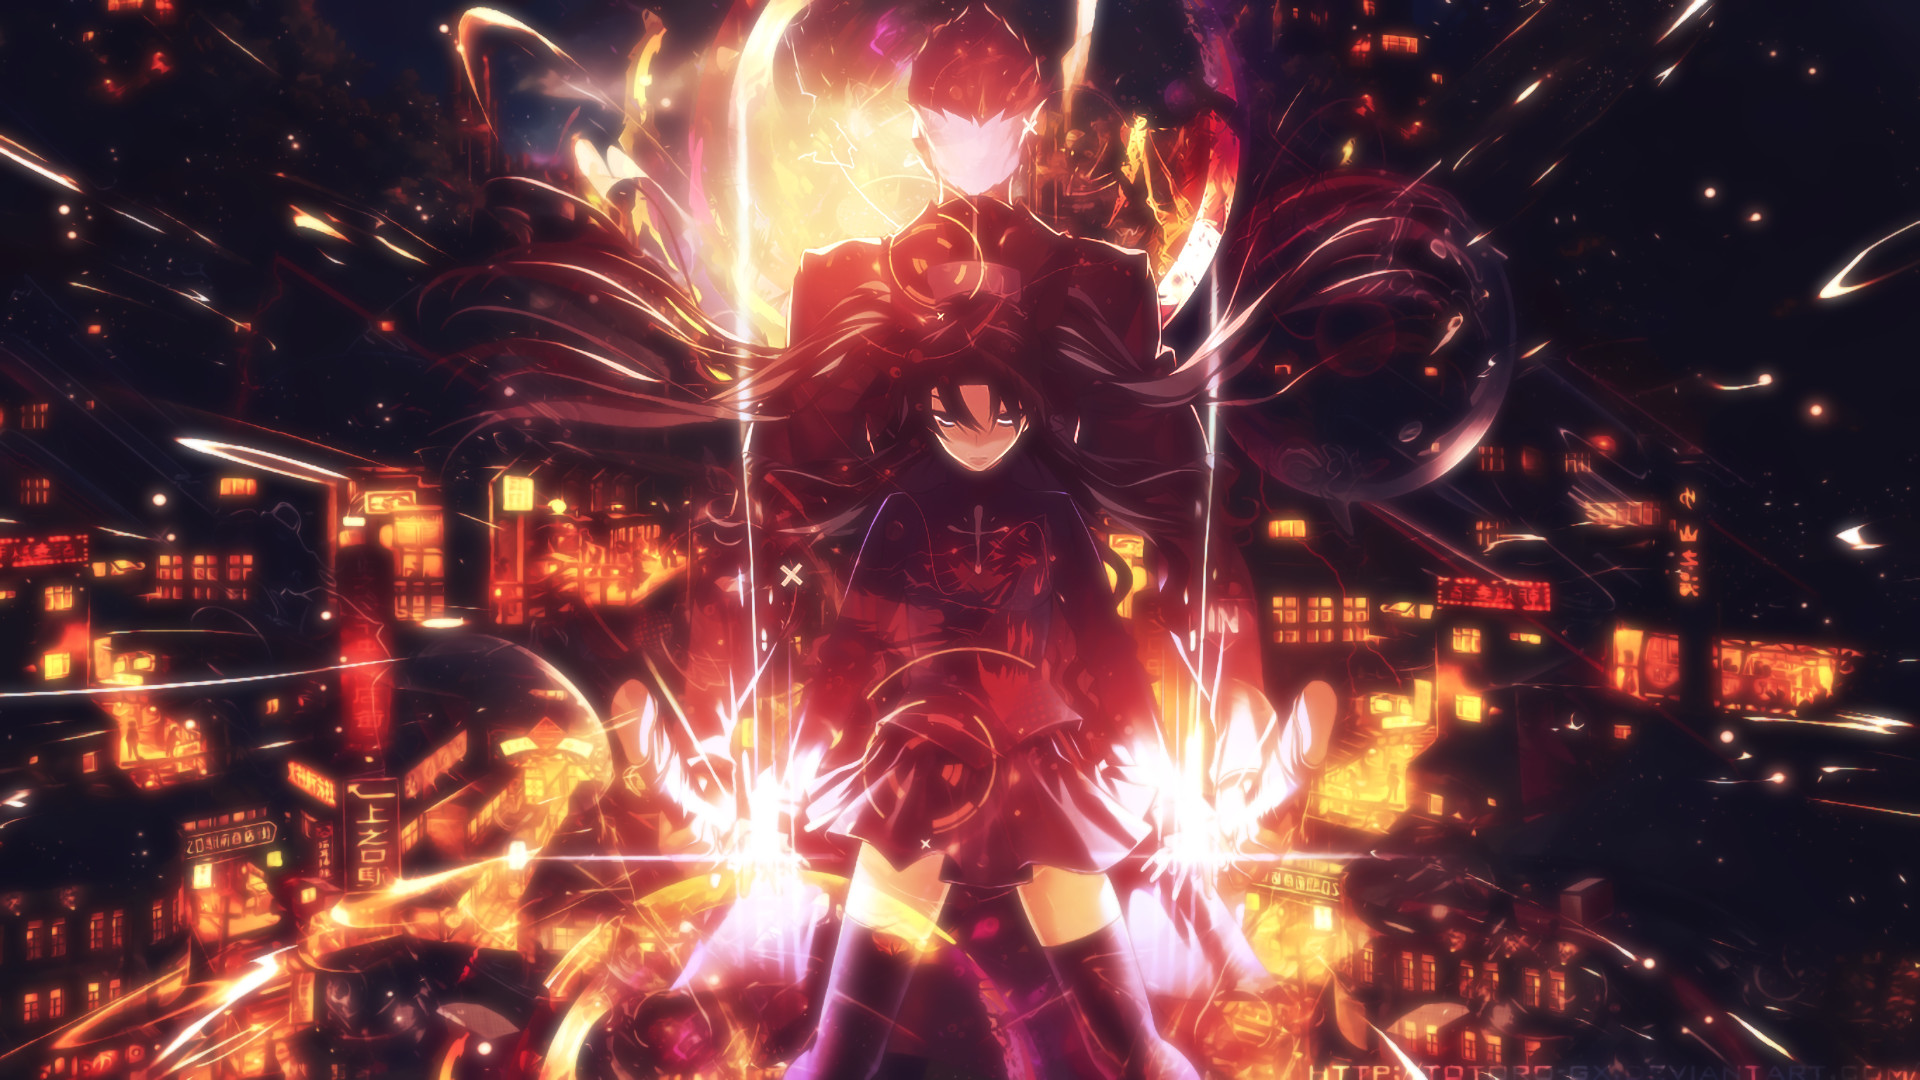 Anime – Fate/Stay Night: Unlimited Blade Works Rin Tohsaka Archer (Fate/